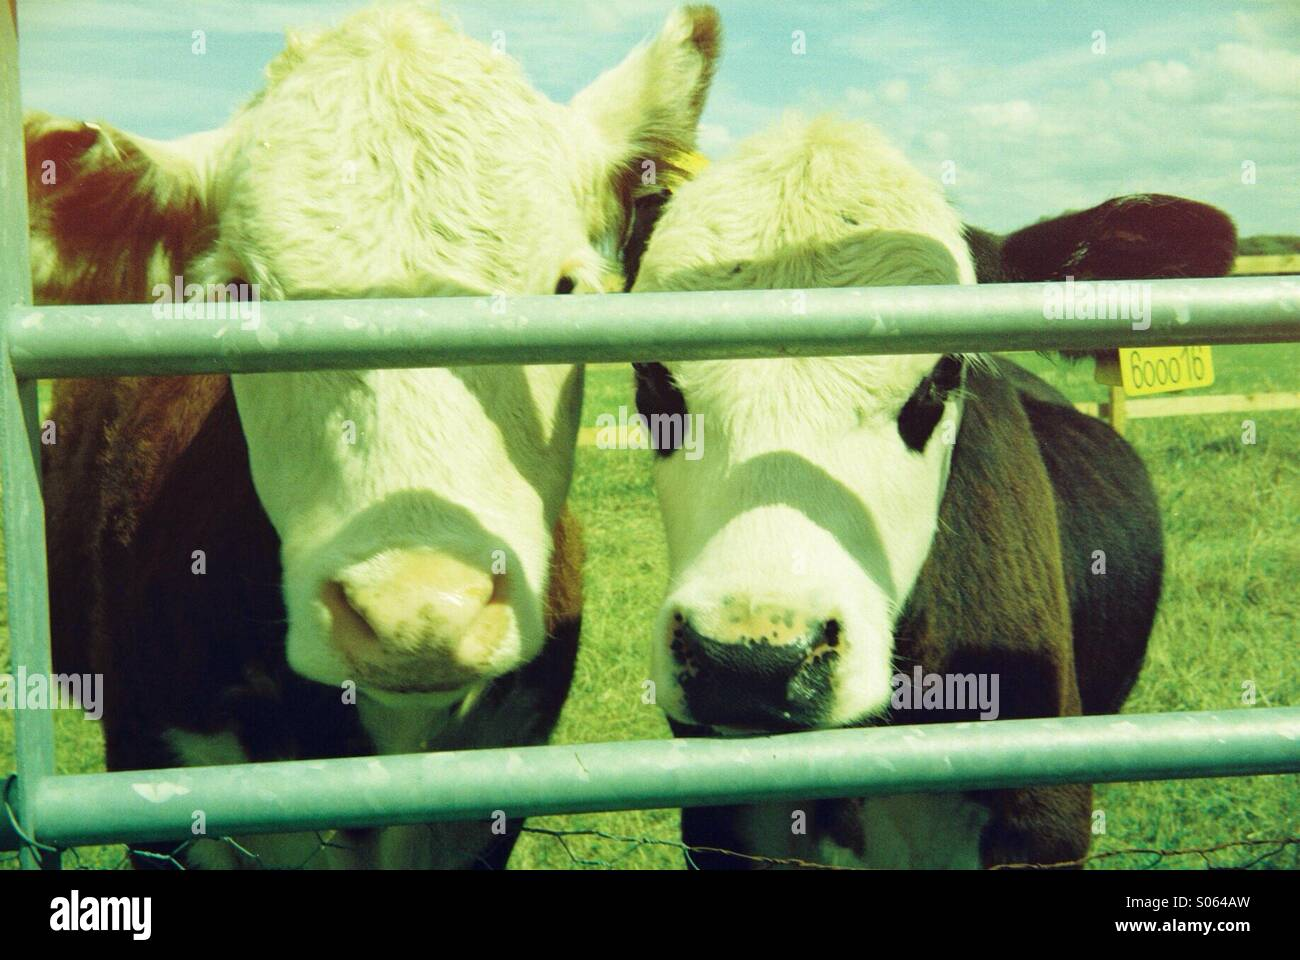 Two cows looking at the camera through a metal gate. - Stock Image